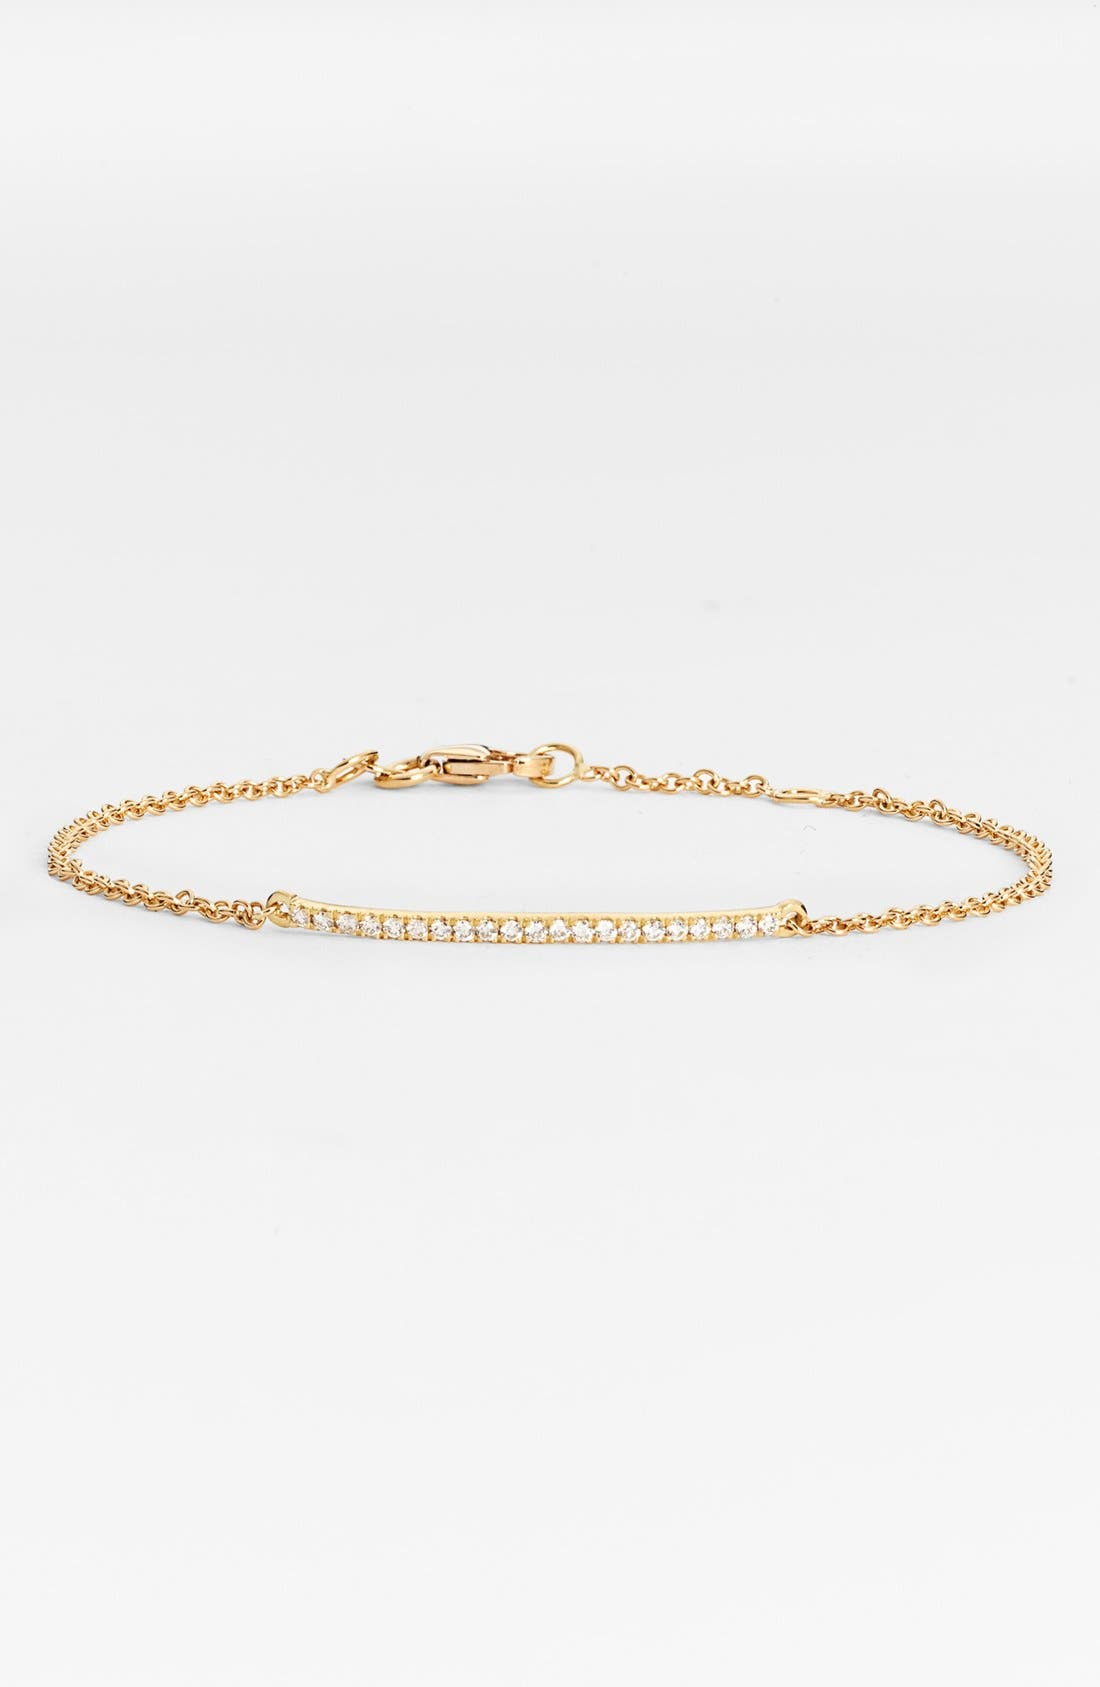 Alternate Image 1 Selected - Bony Levy Diamond Bar Bracelet (Nordstrom Exclusive)